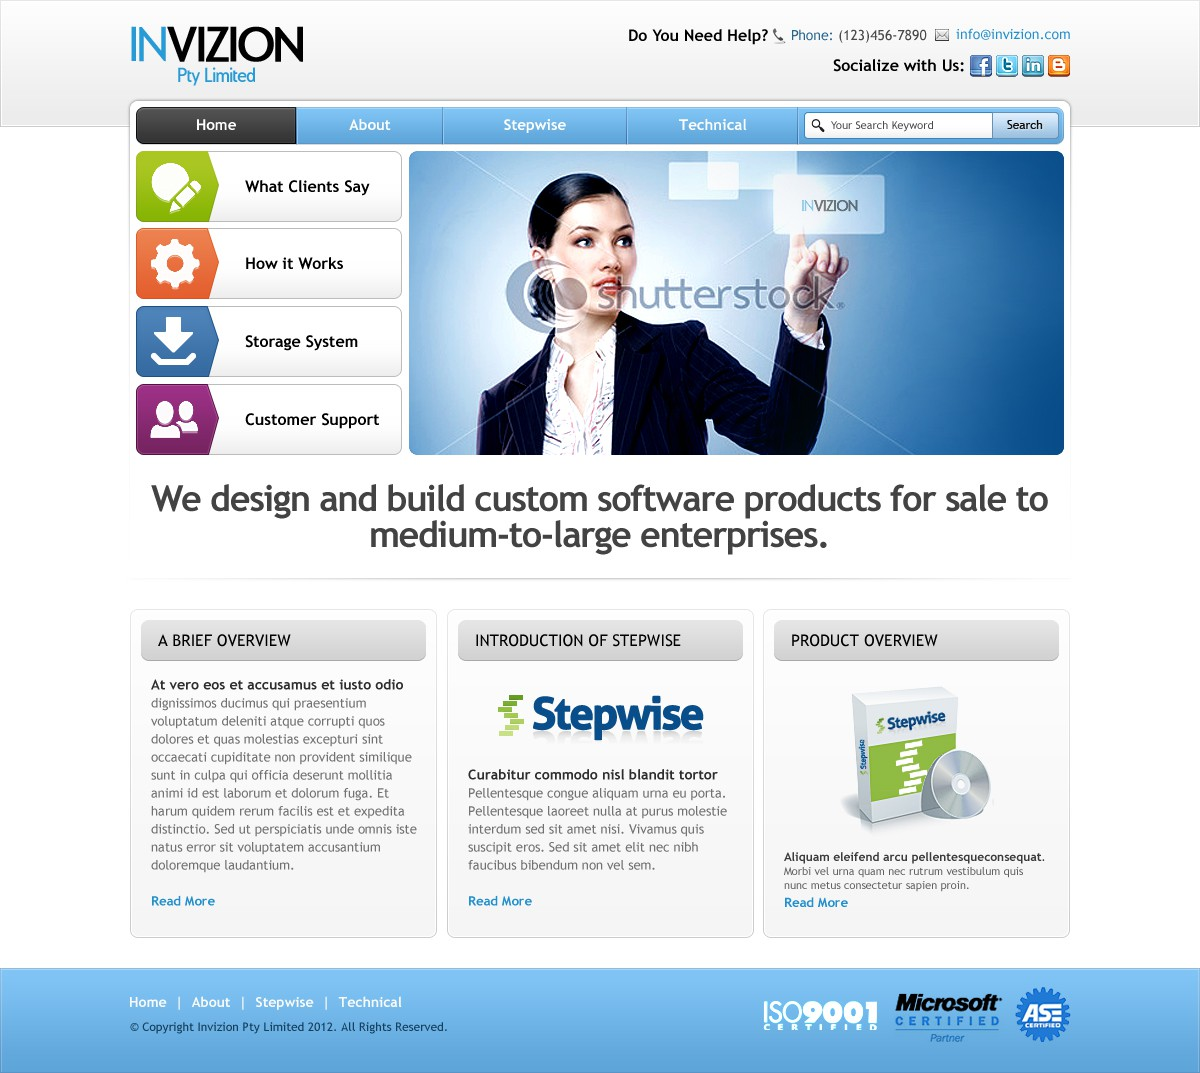 Create the next website design for Invizion Pty Limited